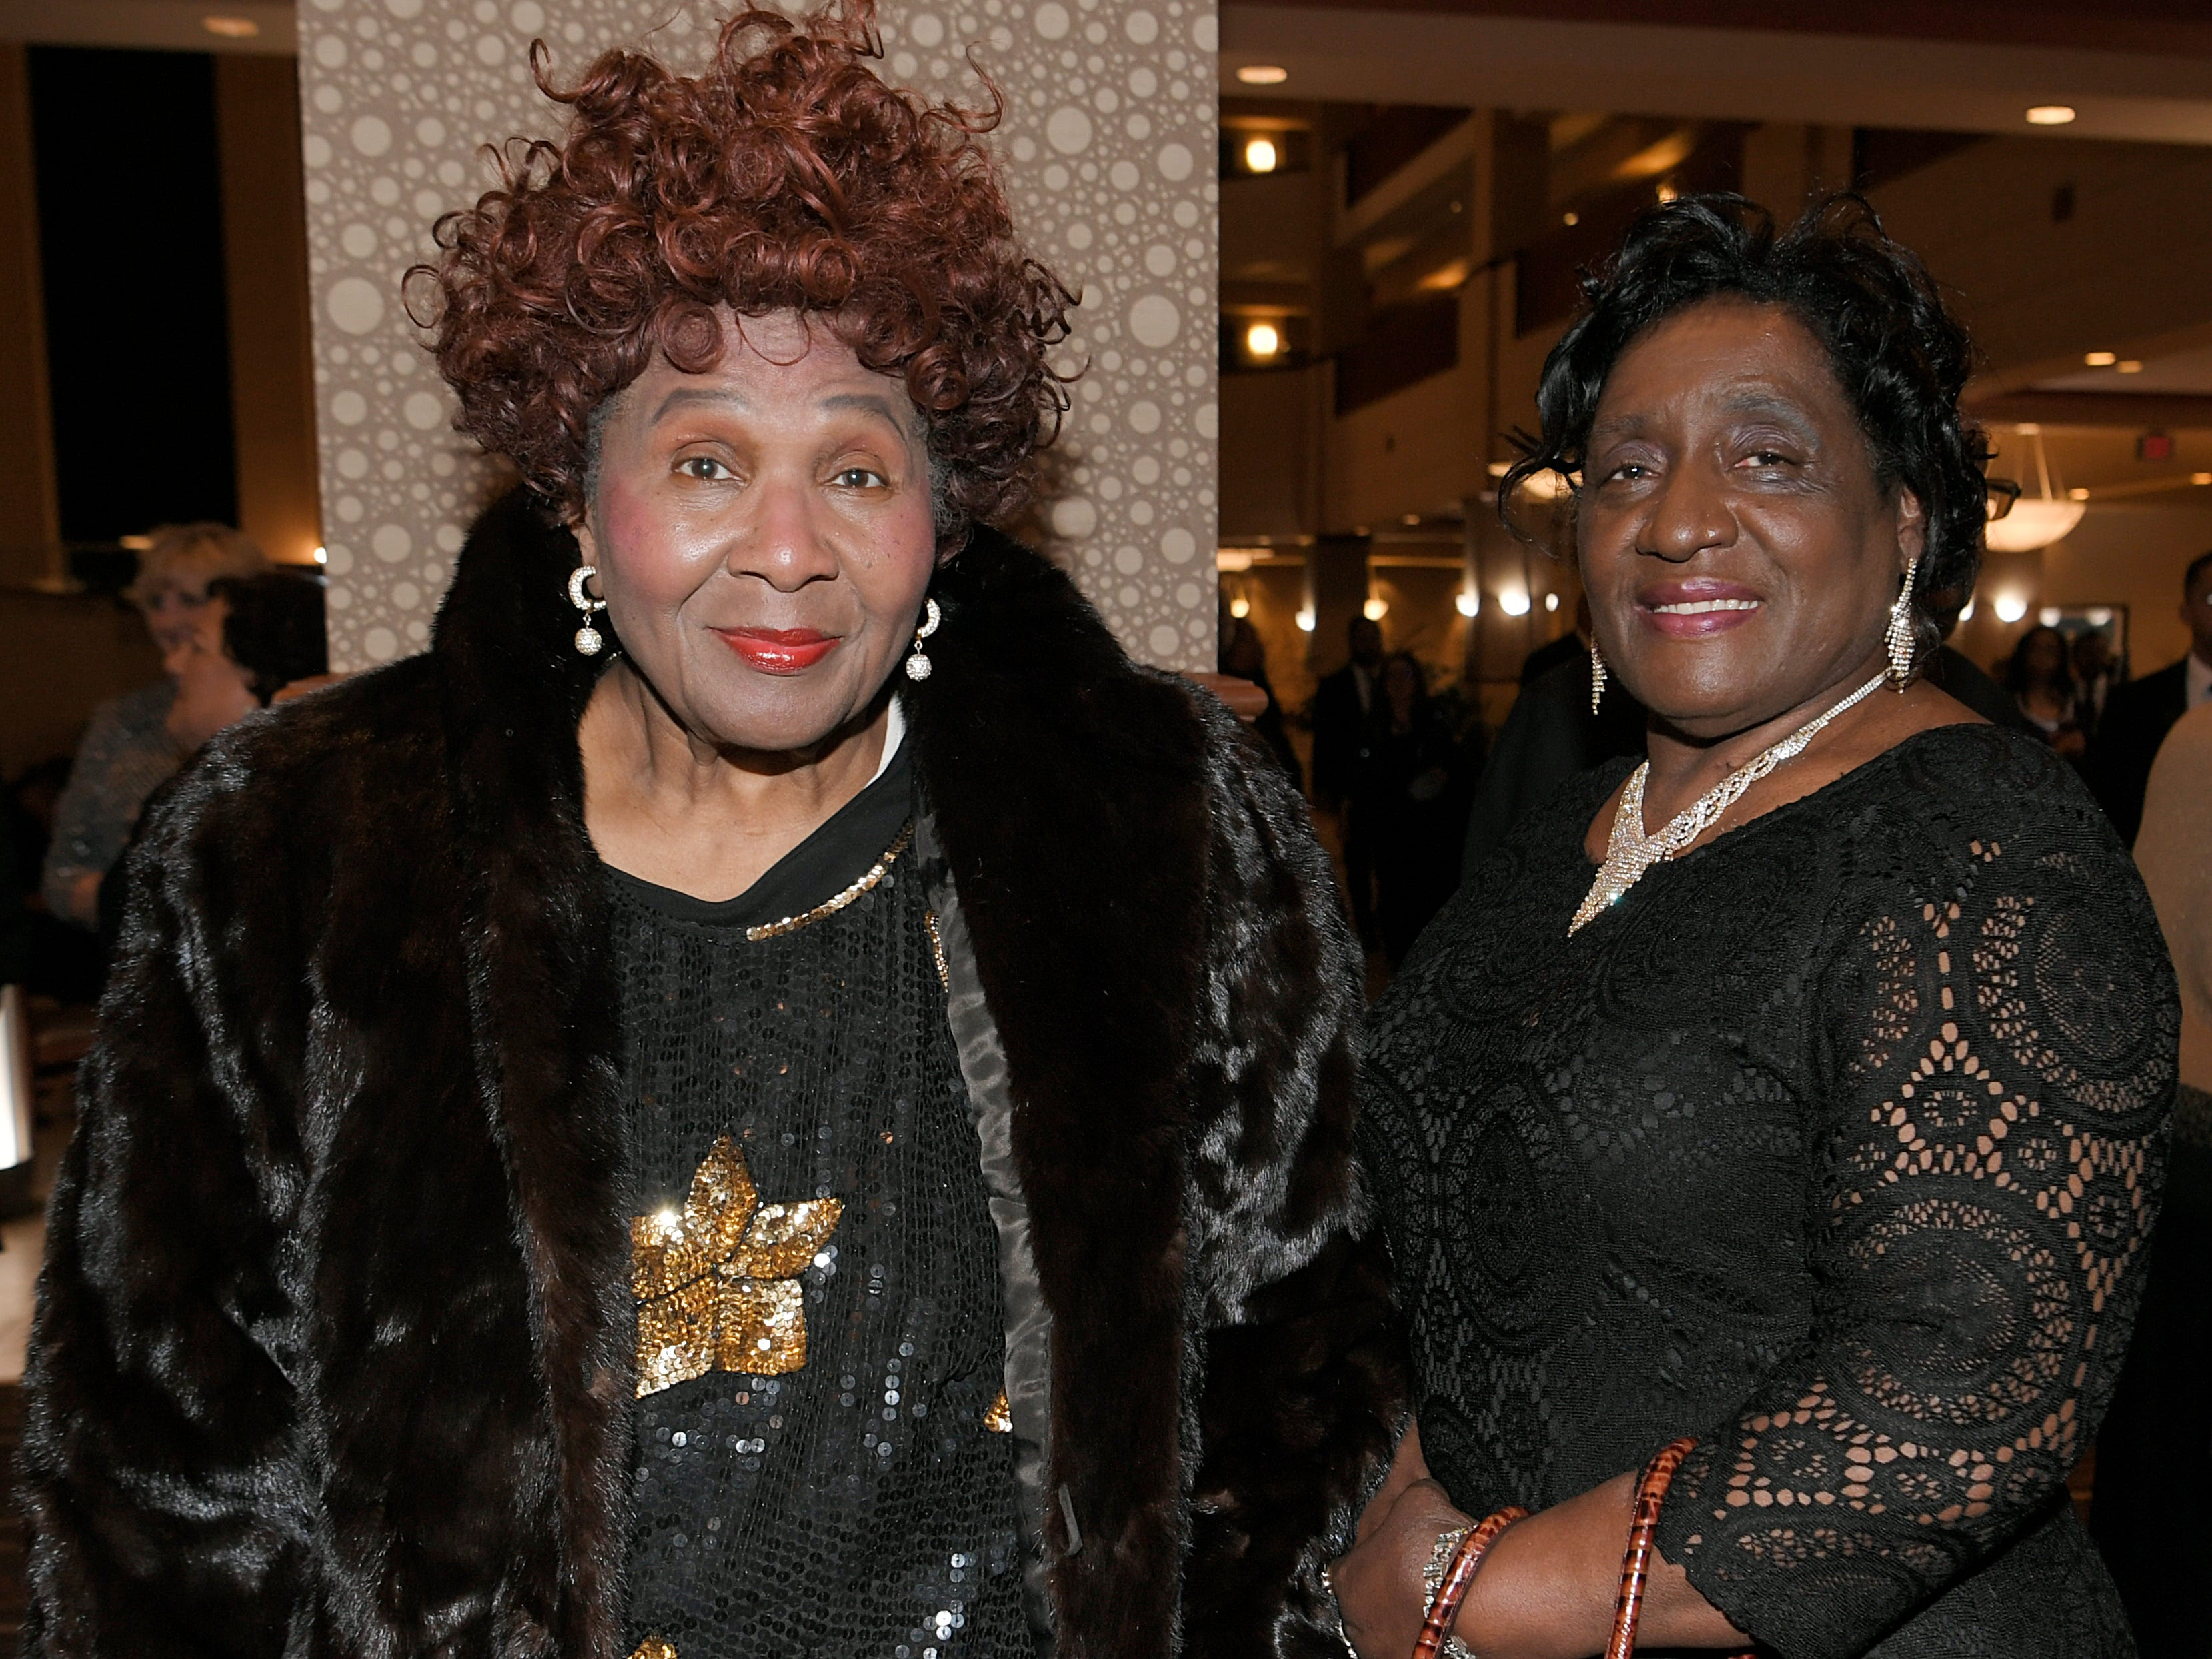 Francis Patton and Marie Ogilvie at the African American Heritage Society's 18th Annual Black Tie Affair at the Embassy Suites in Franklin on Sat., Feb. 2, 2019.